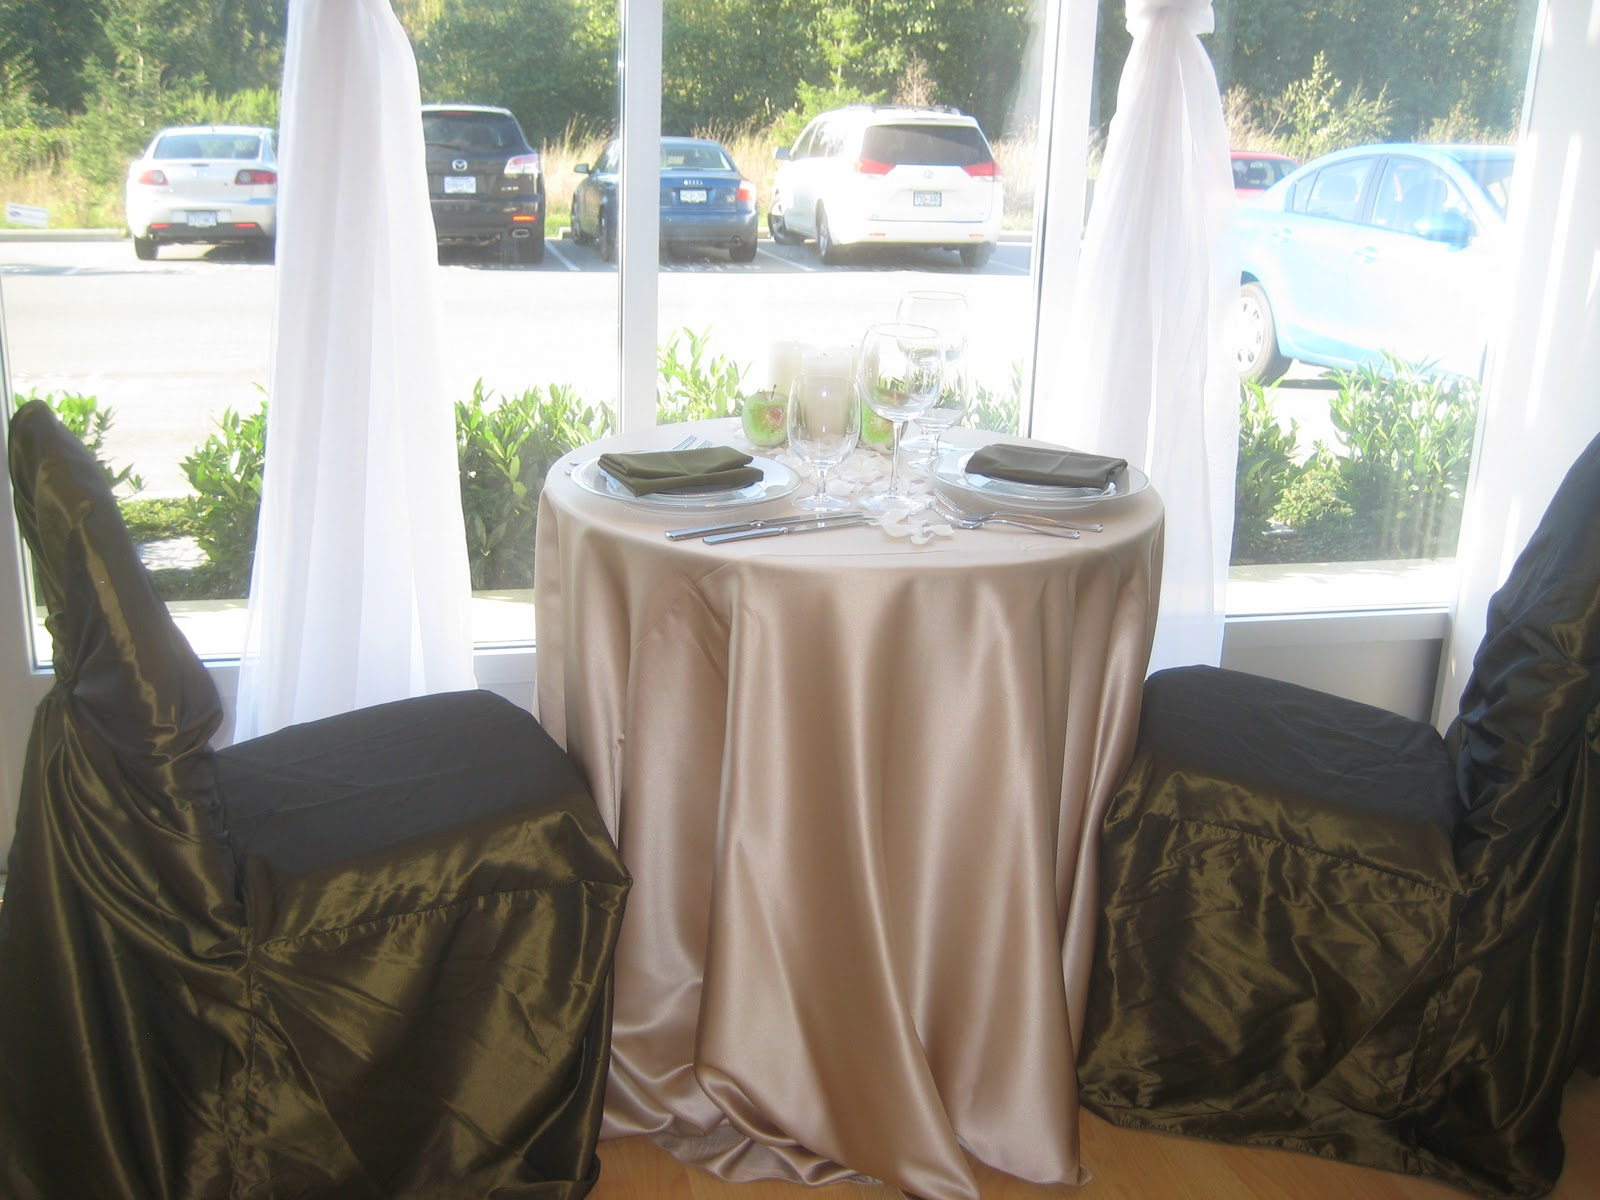 Chair Decor: October 2010